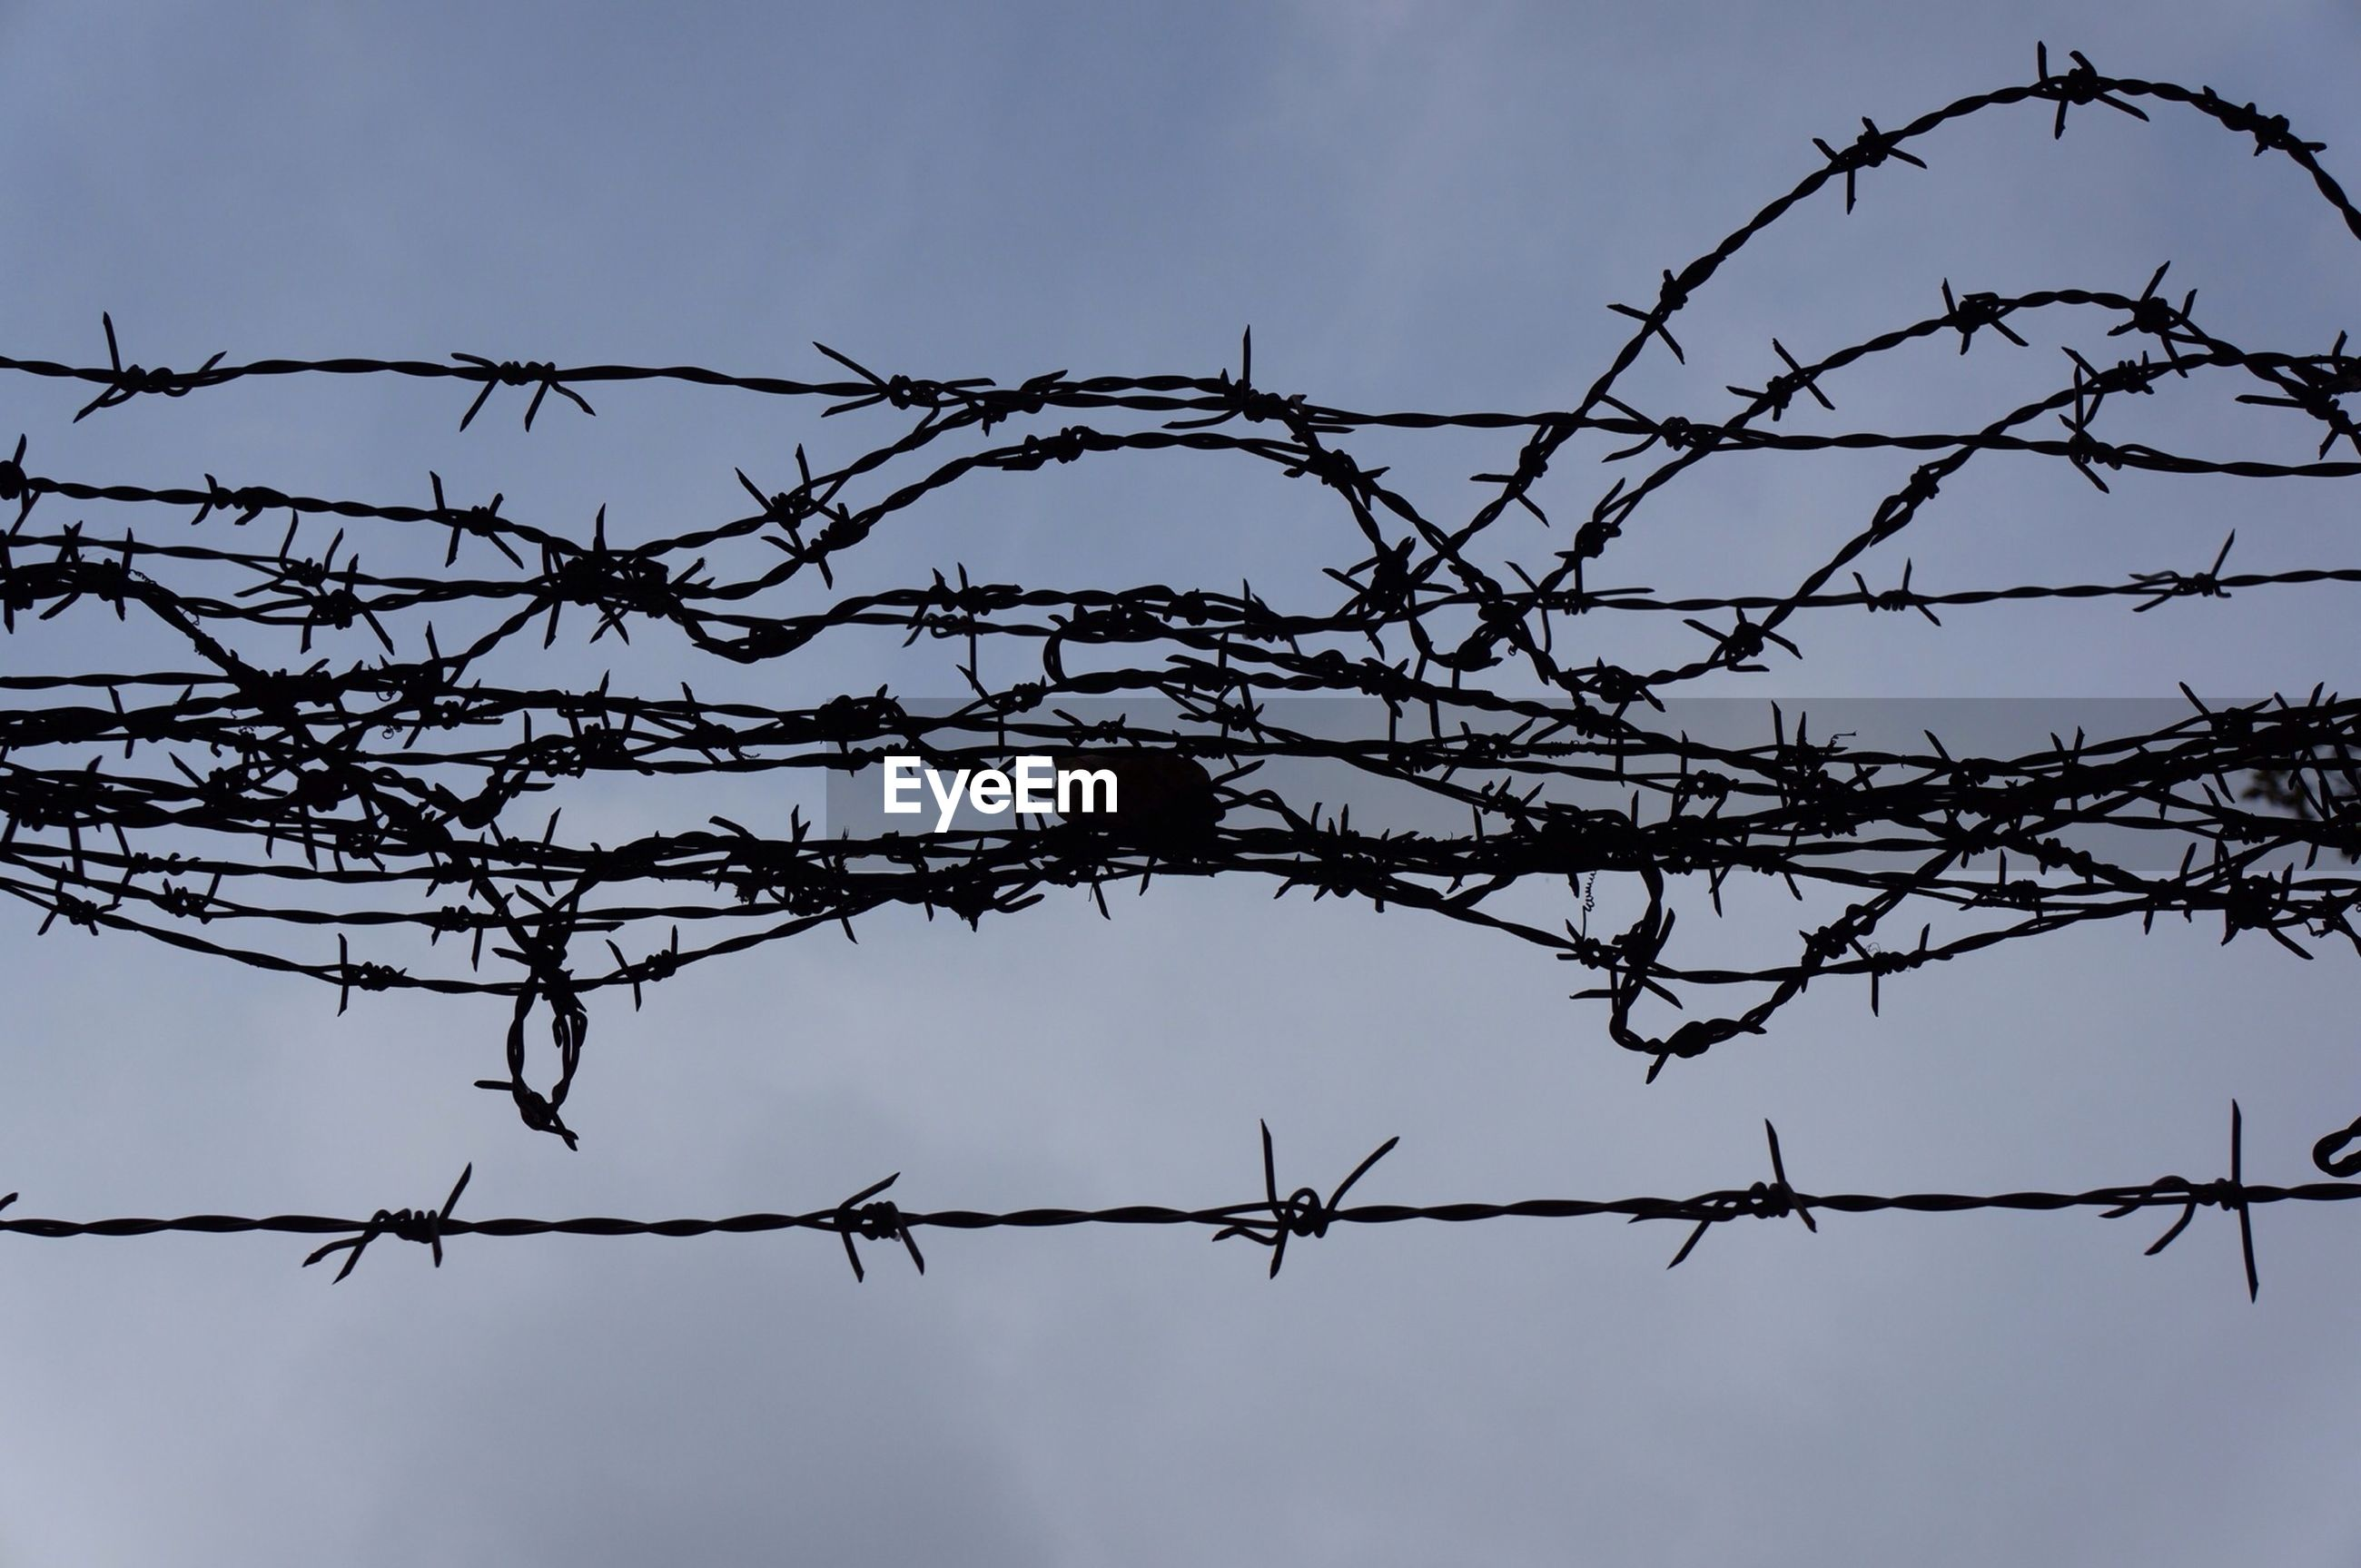 fence, protection, chainlink fence, safety, security, barbed wire, metal, low angle view, sky, clear sky, silhouette, metallic, focus on foreground, outdoors, nature, no people, connection, close-up, branch, forbidden